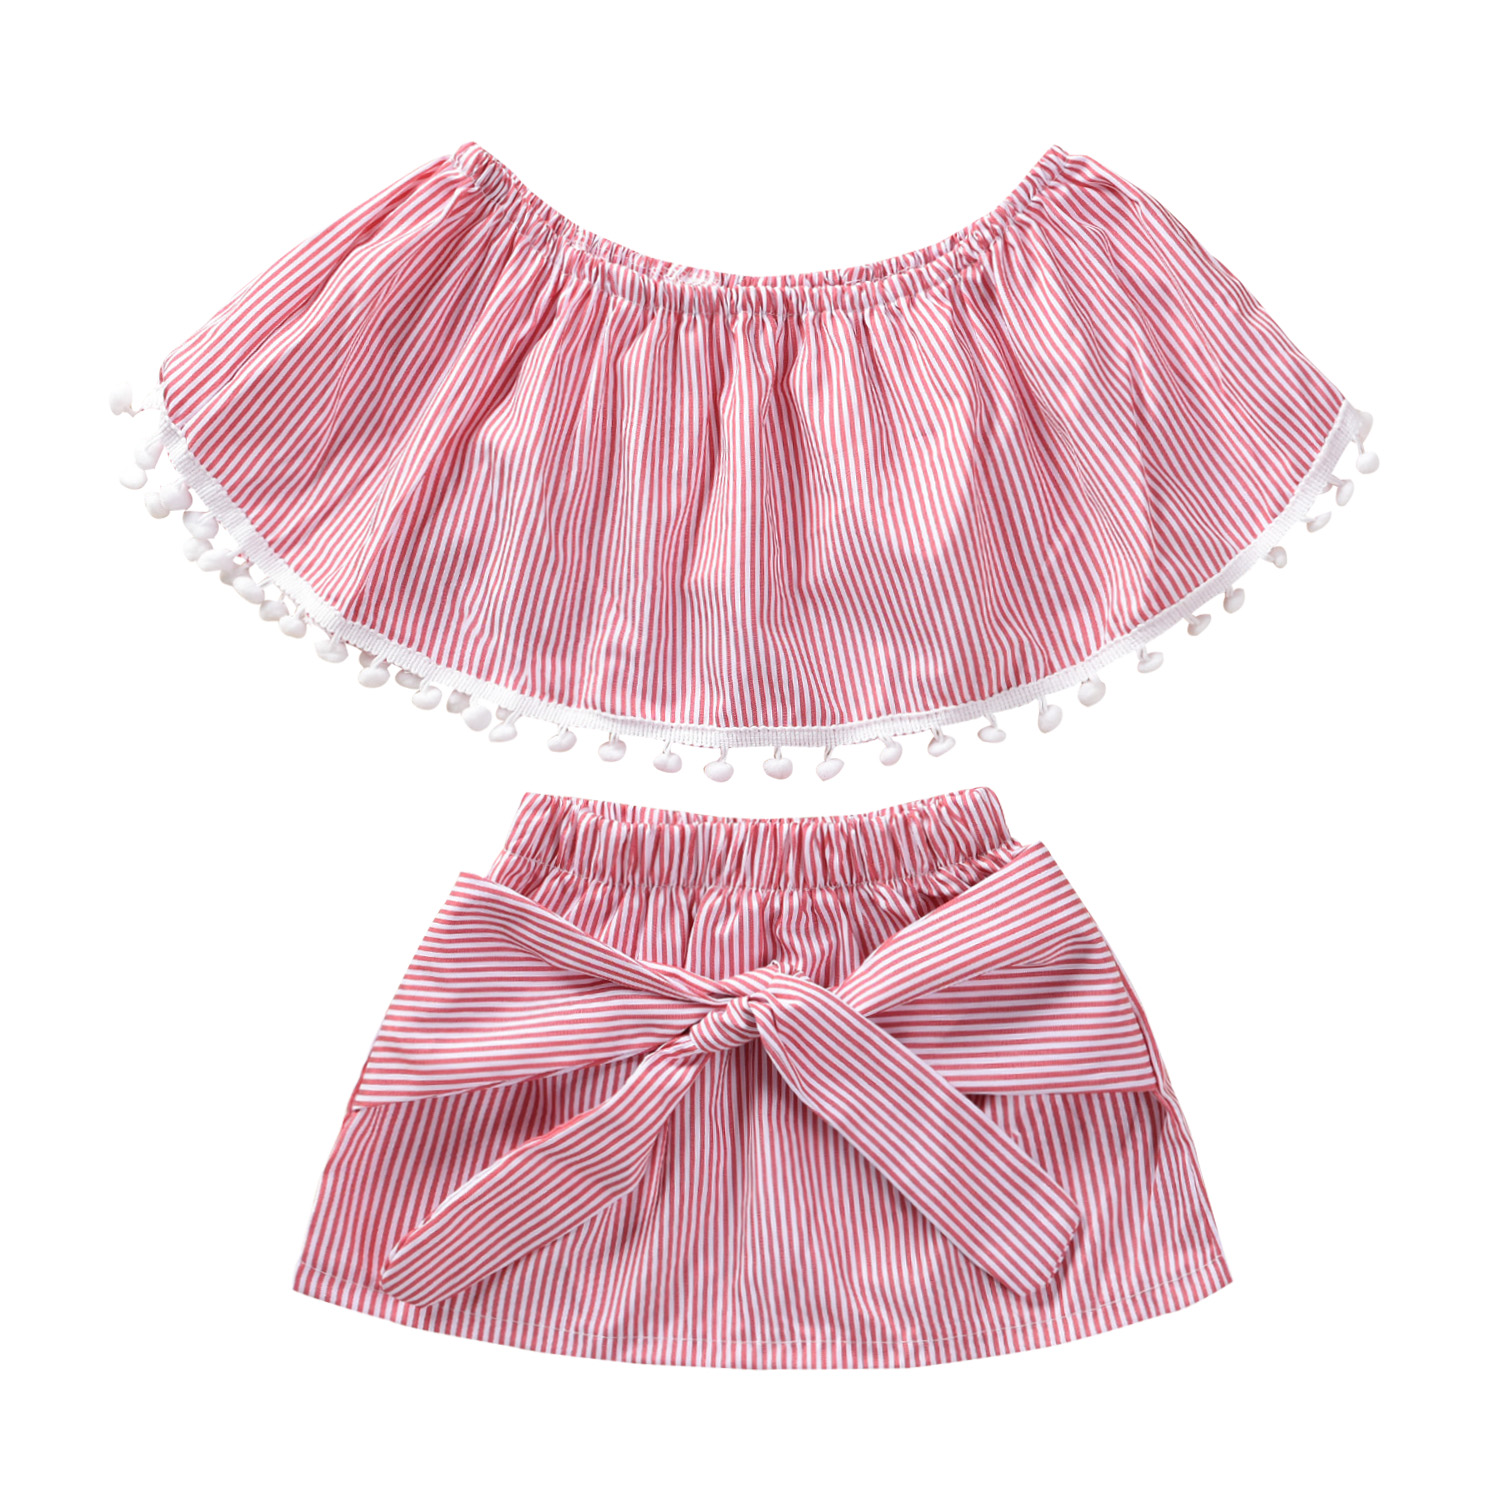 8714f4439 2pcs Kids Baby Girls Clothes Sets Pink Striped Off Shoulder Tassel Tops  Skirt Outfits Clothes 6M-5Y ~ Hot Deal June 2019